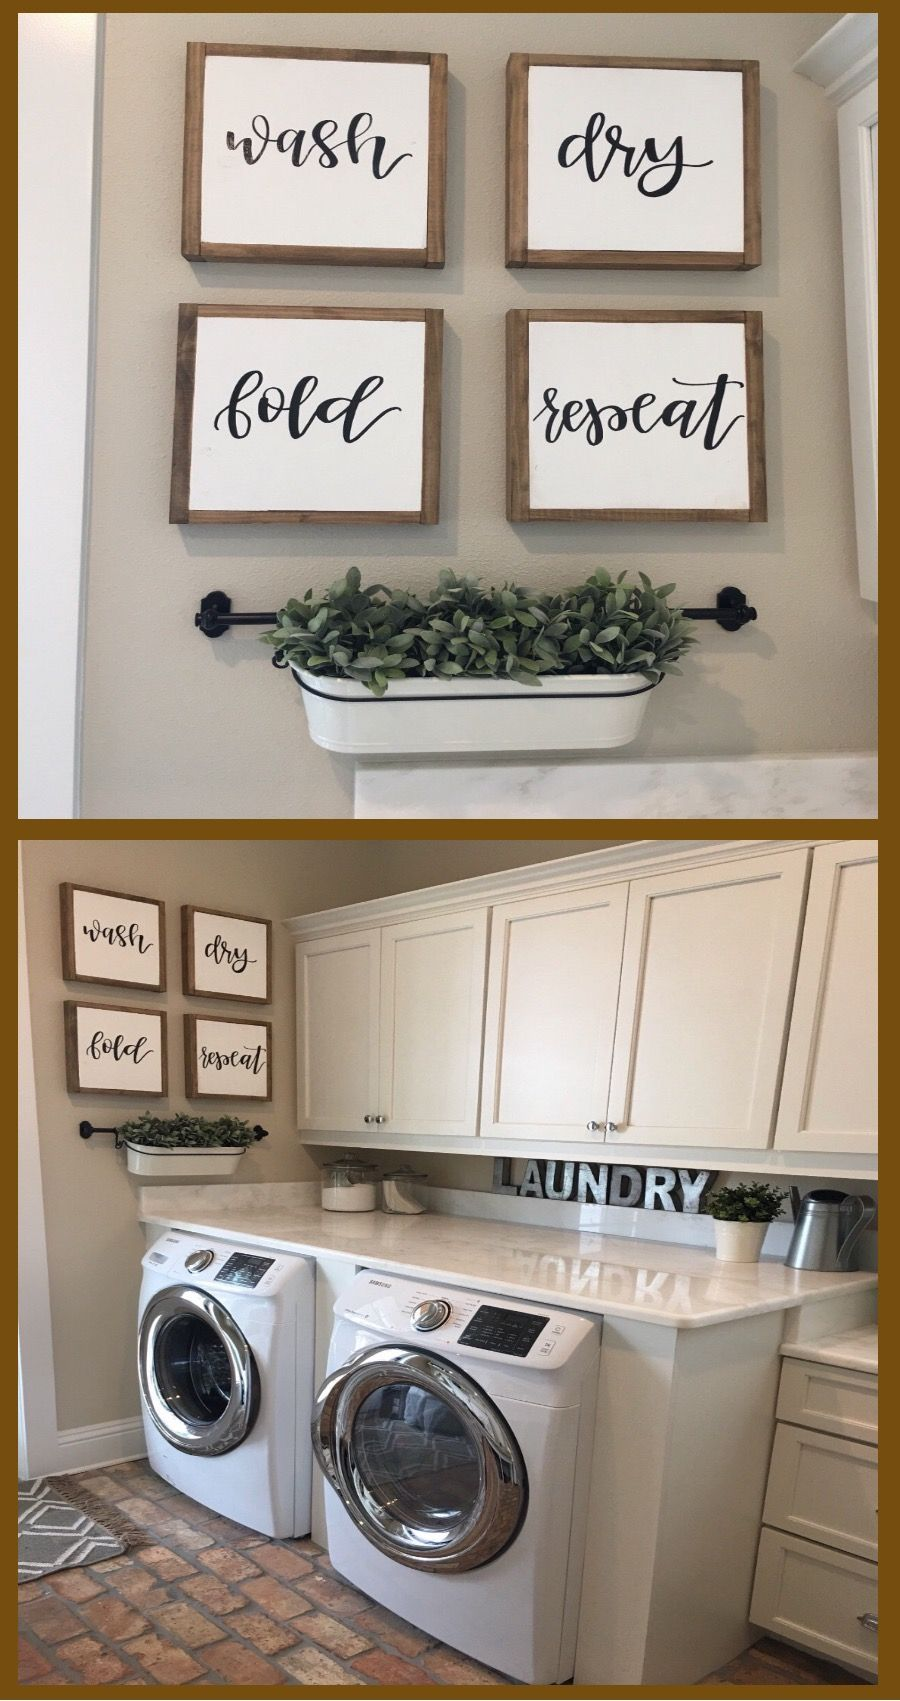 Great Set Of Signs For Laundry Room Wall Decor Set Of Four Signs Wash Dry Fold Repeat Sign R Laundry Room Signs Laundry Room Wall Decor Wall Decor Laundry